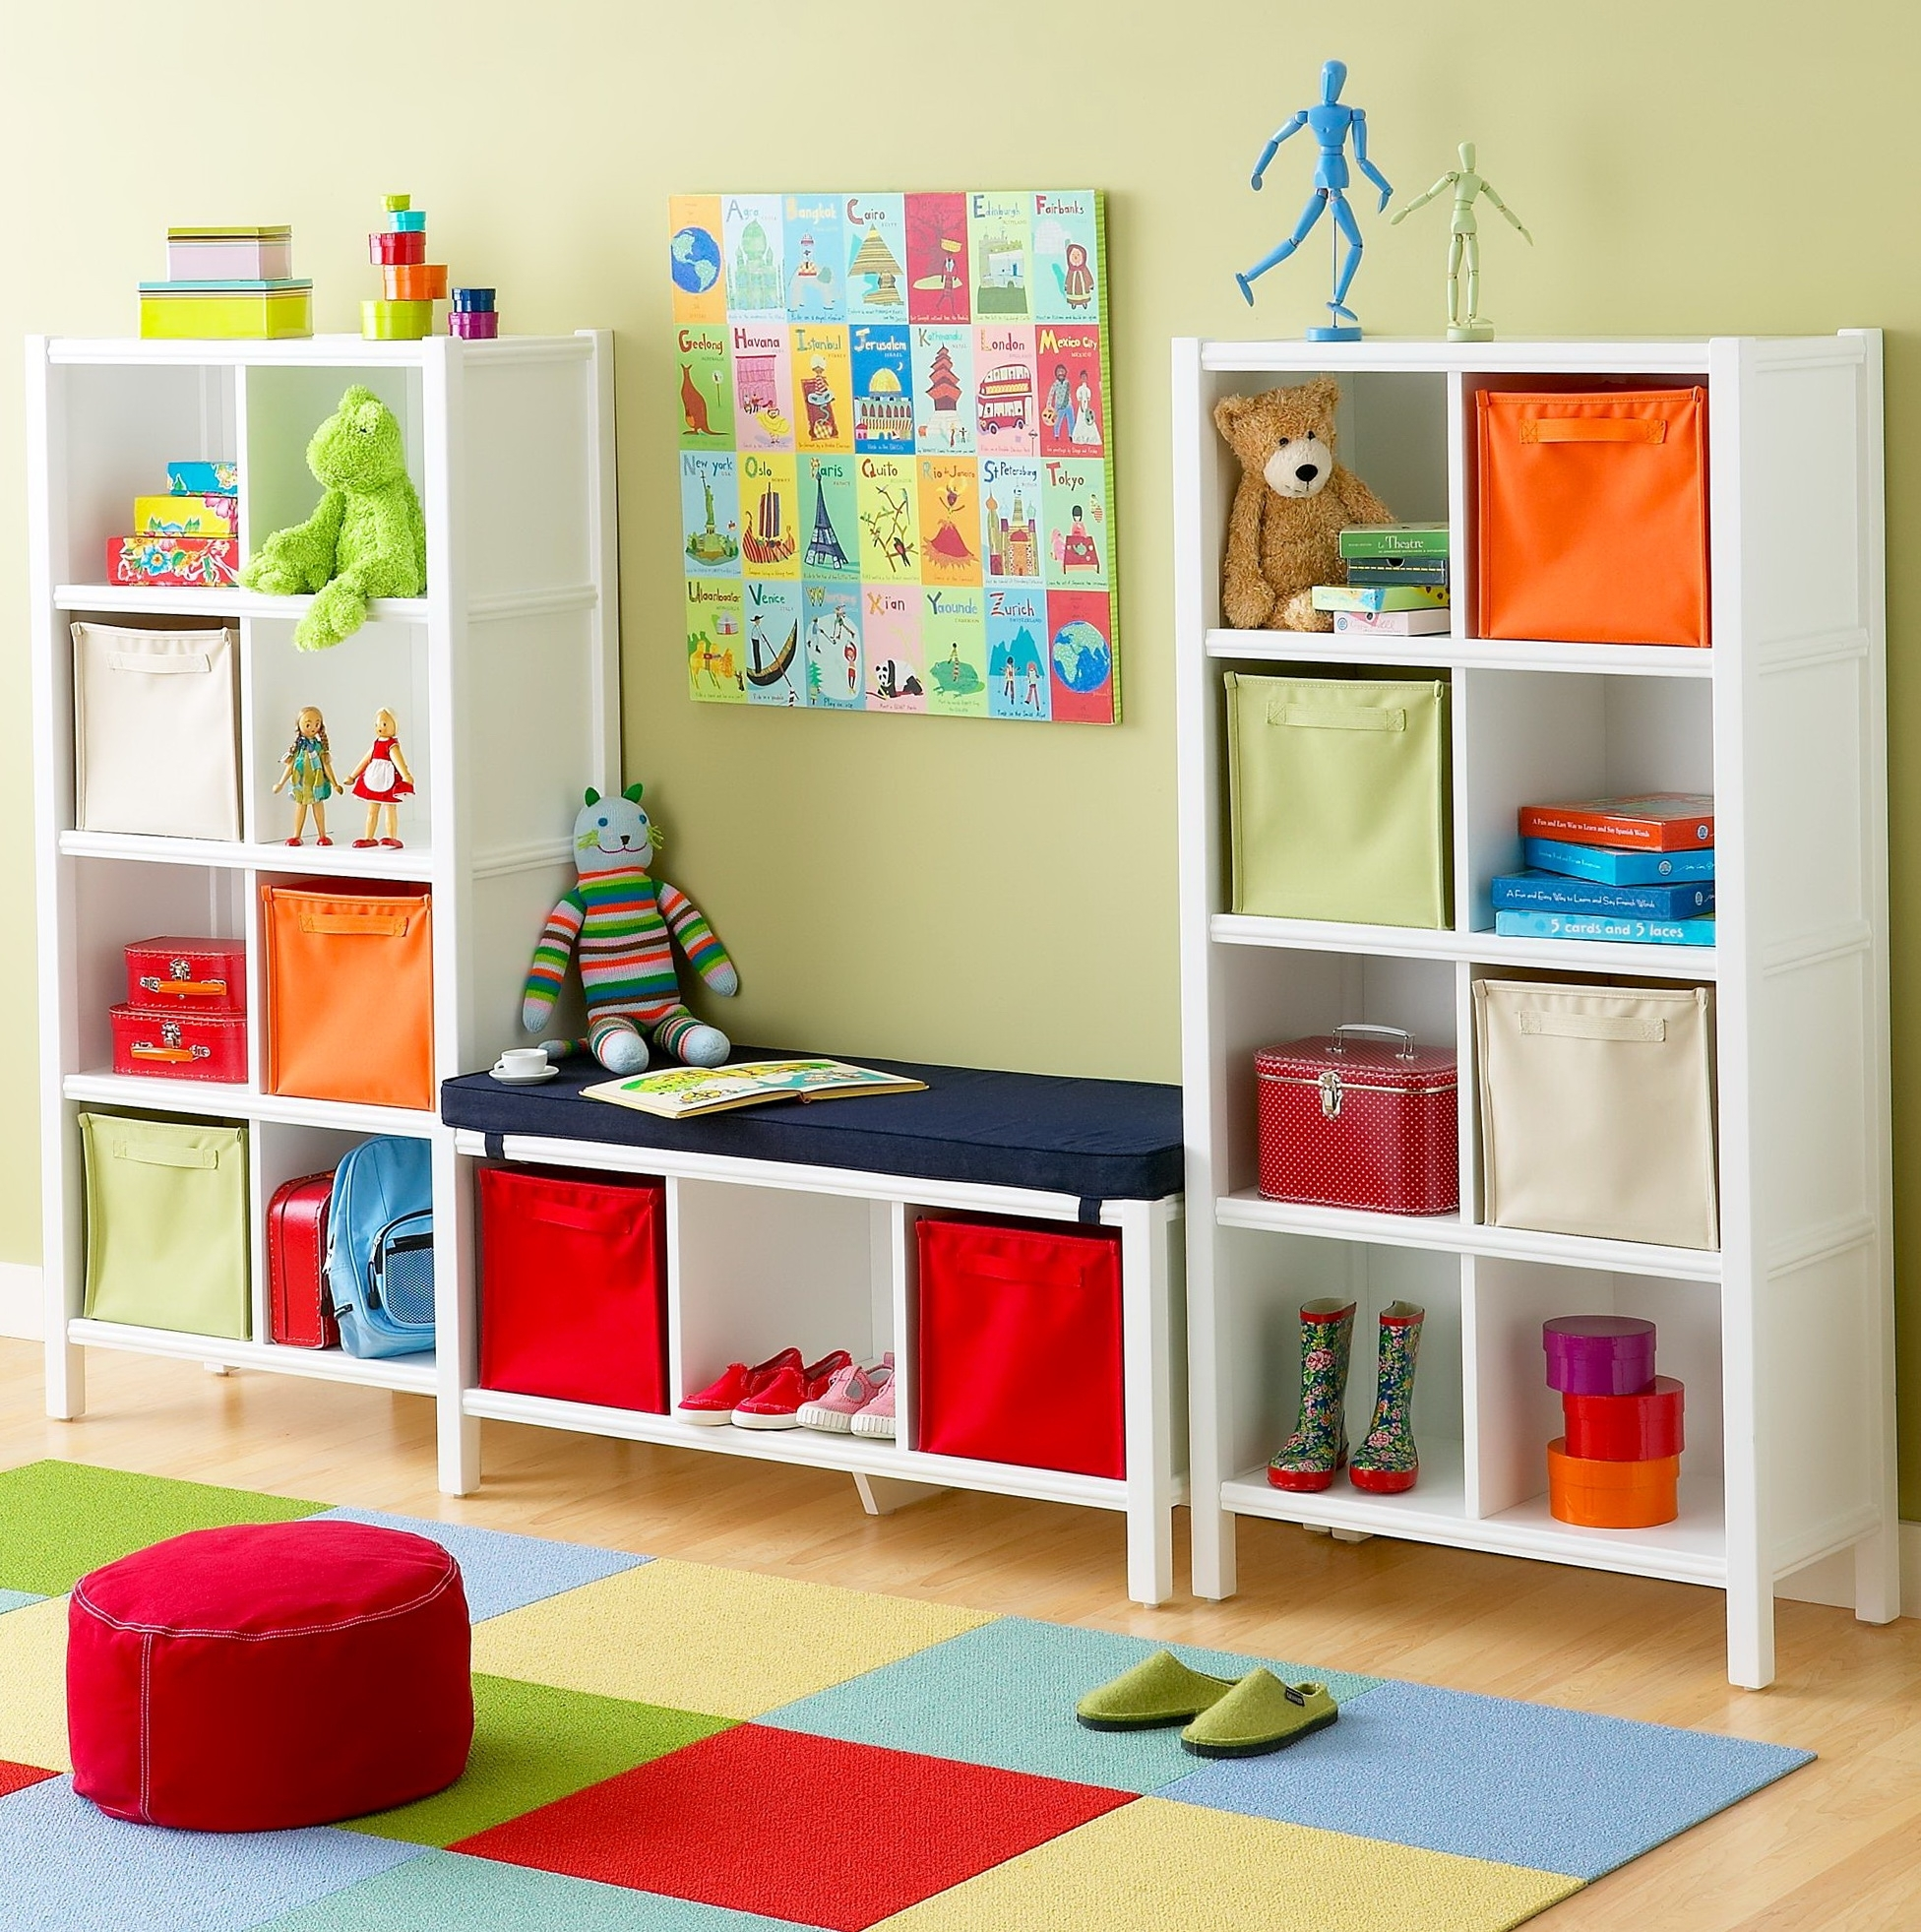 Kids Room: Fascinating Bookshelf For Kids Room Design Hanging For Widely Used Bookcases For Kids Room (View 11 of 15)